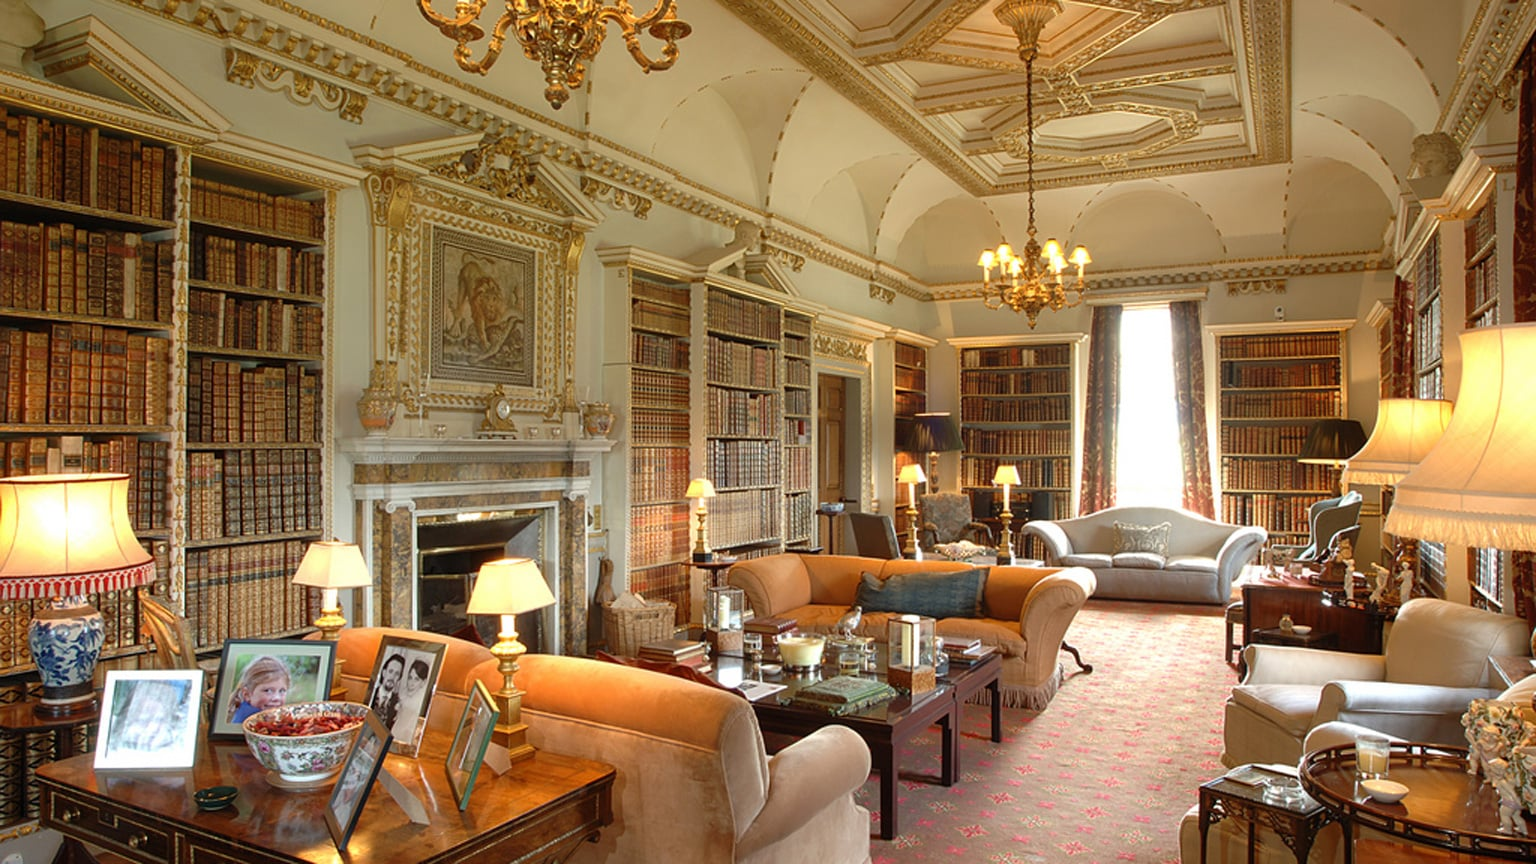 The Long Library was designed by William Kent and is now used by the family for entertaining